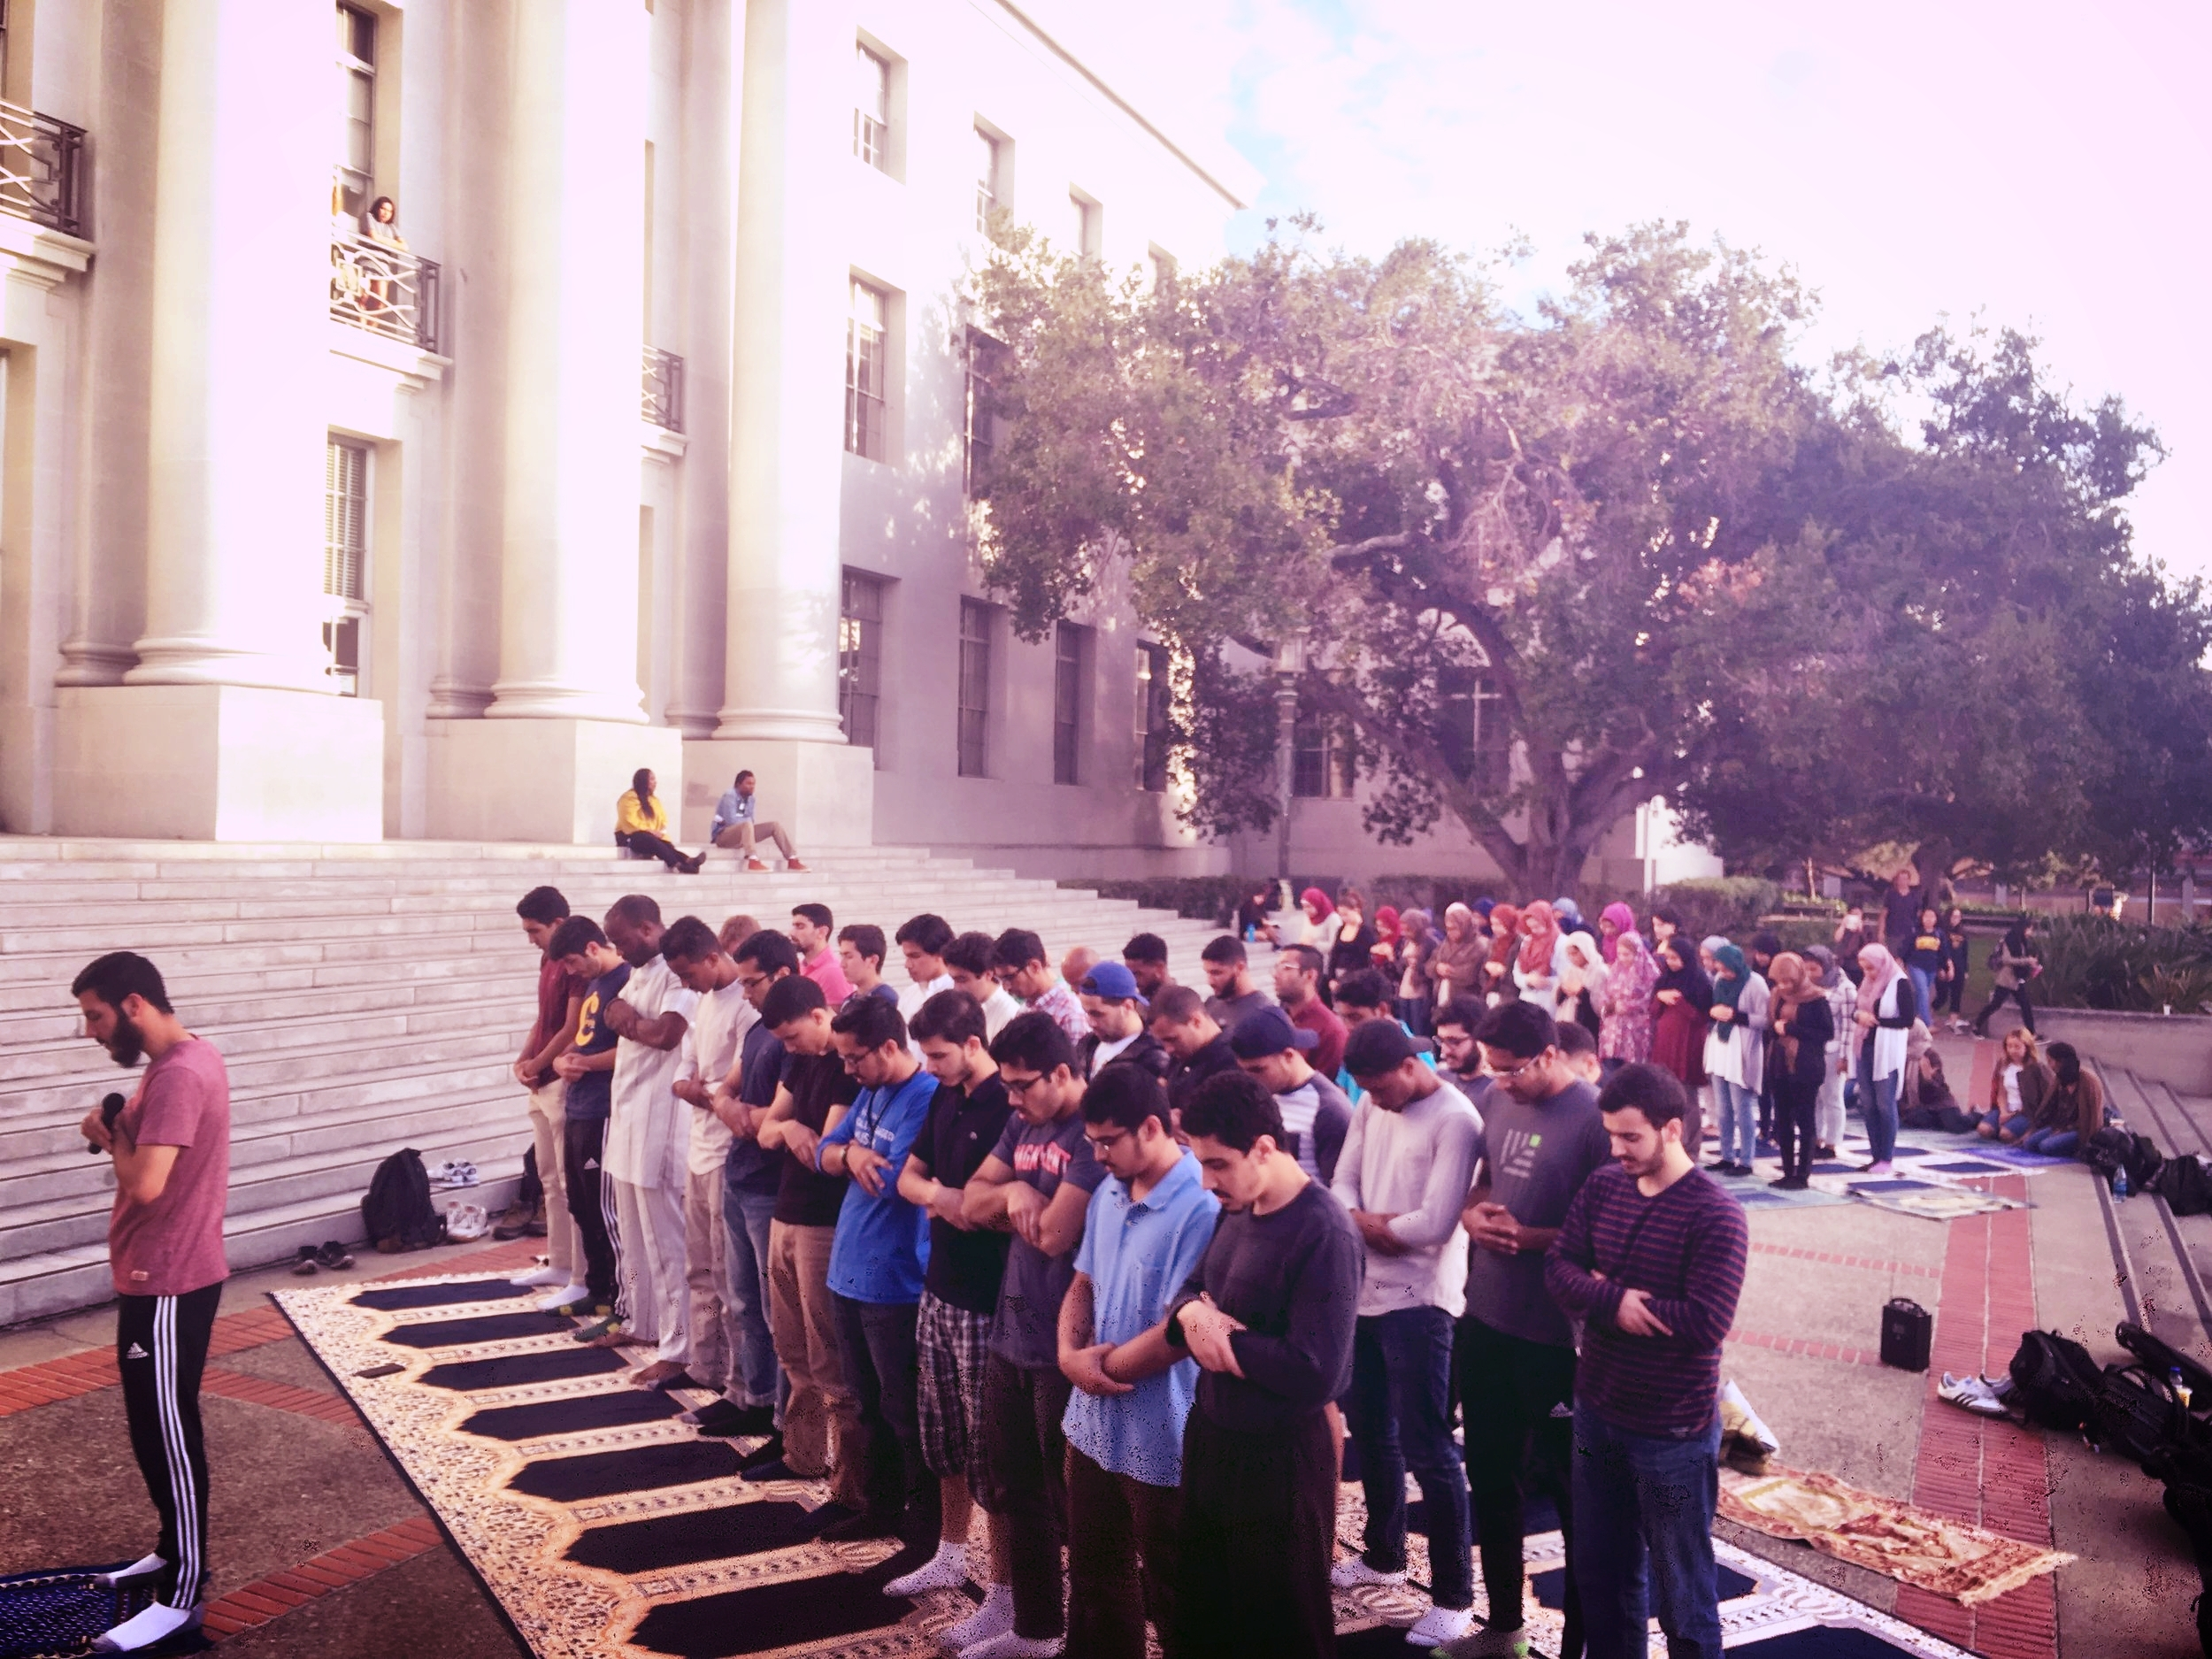 The Muslim student community at Berkeley. -